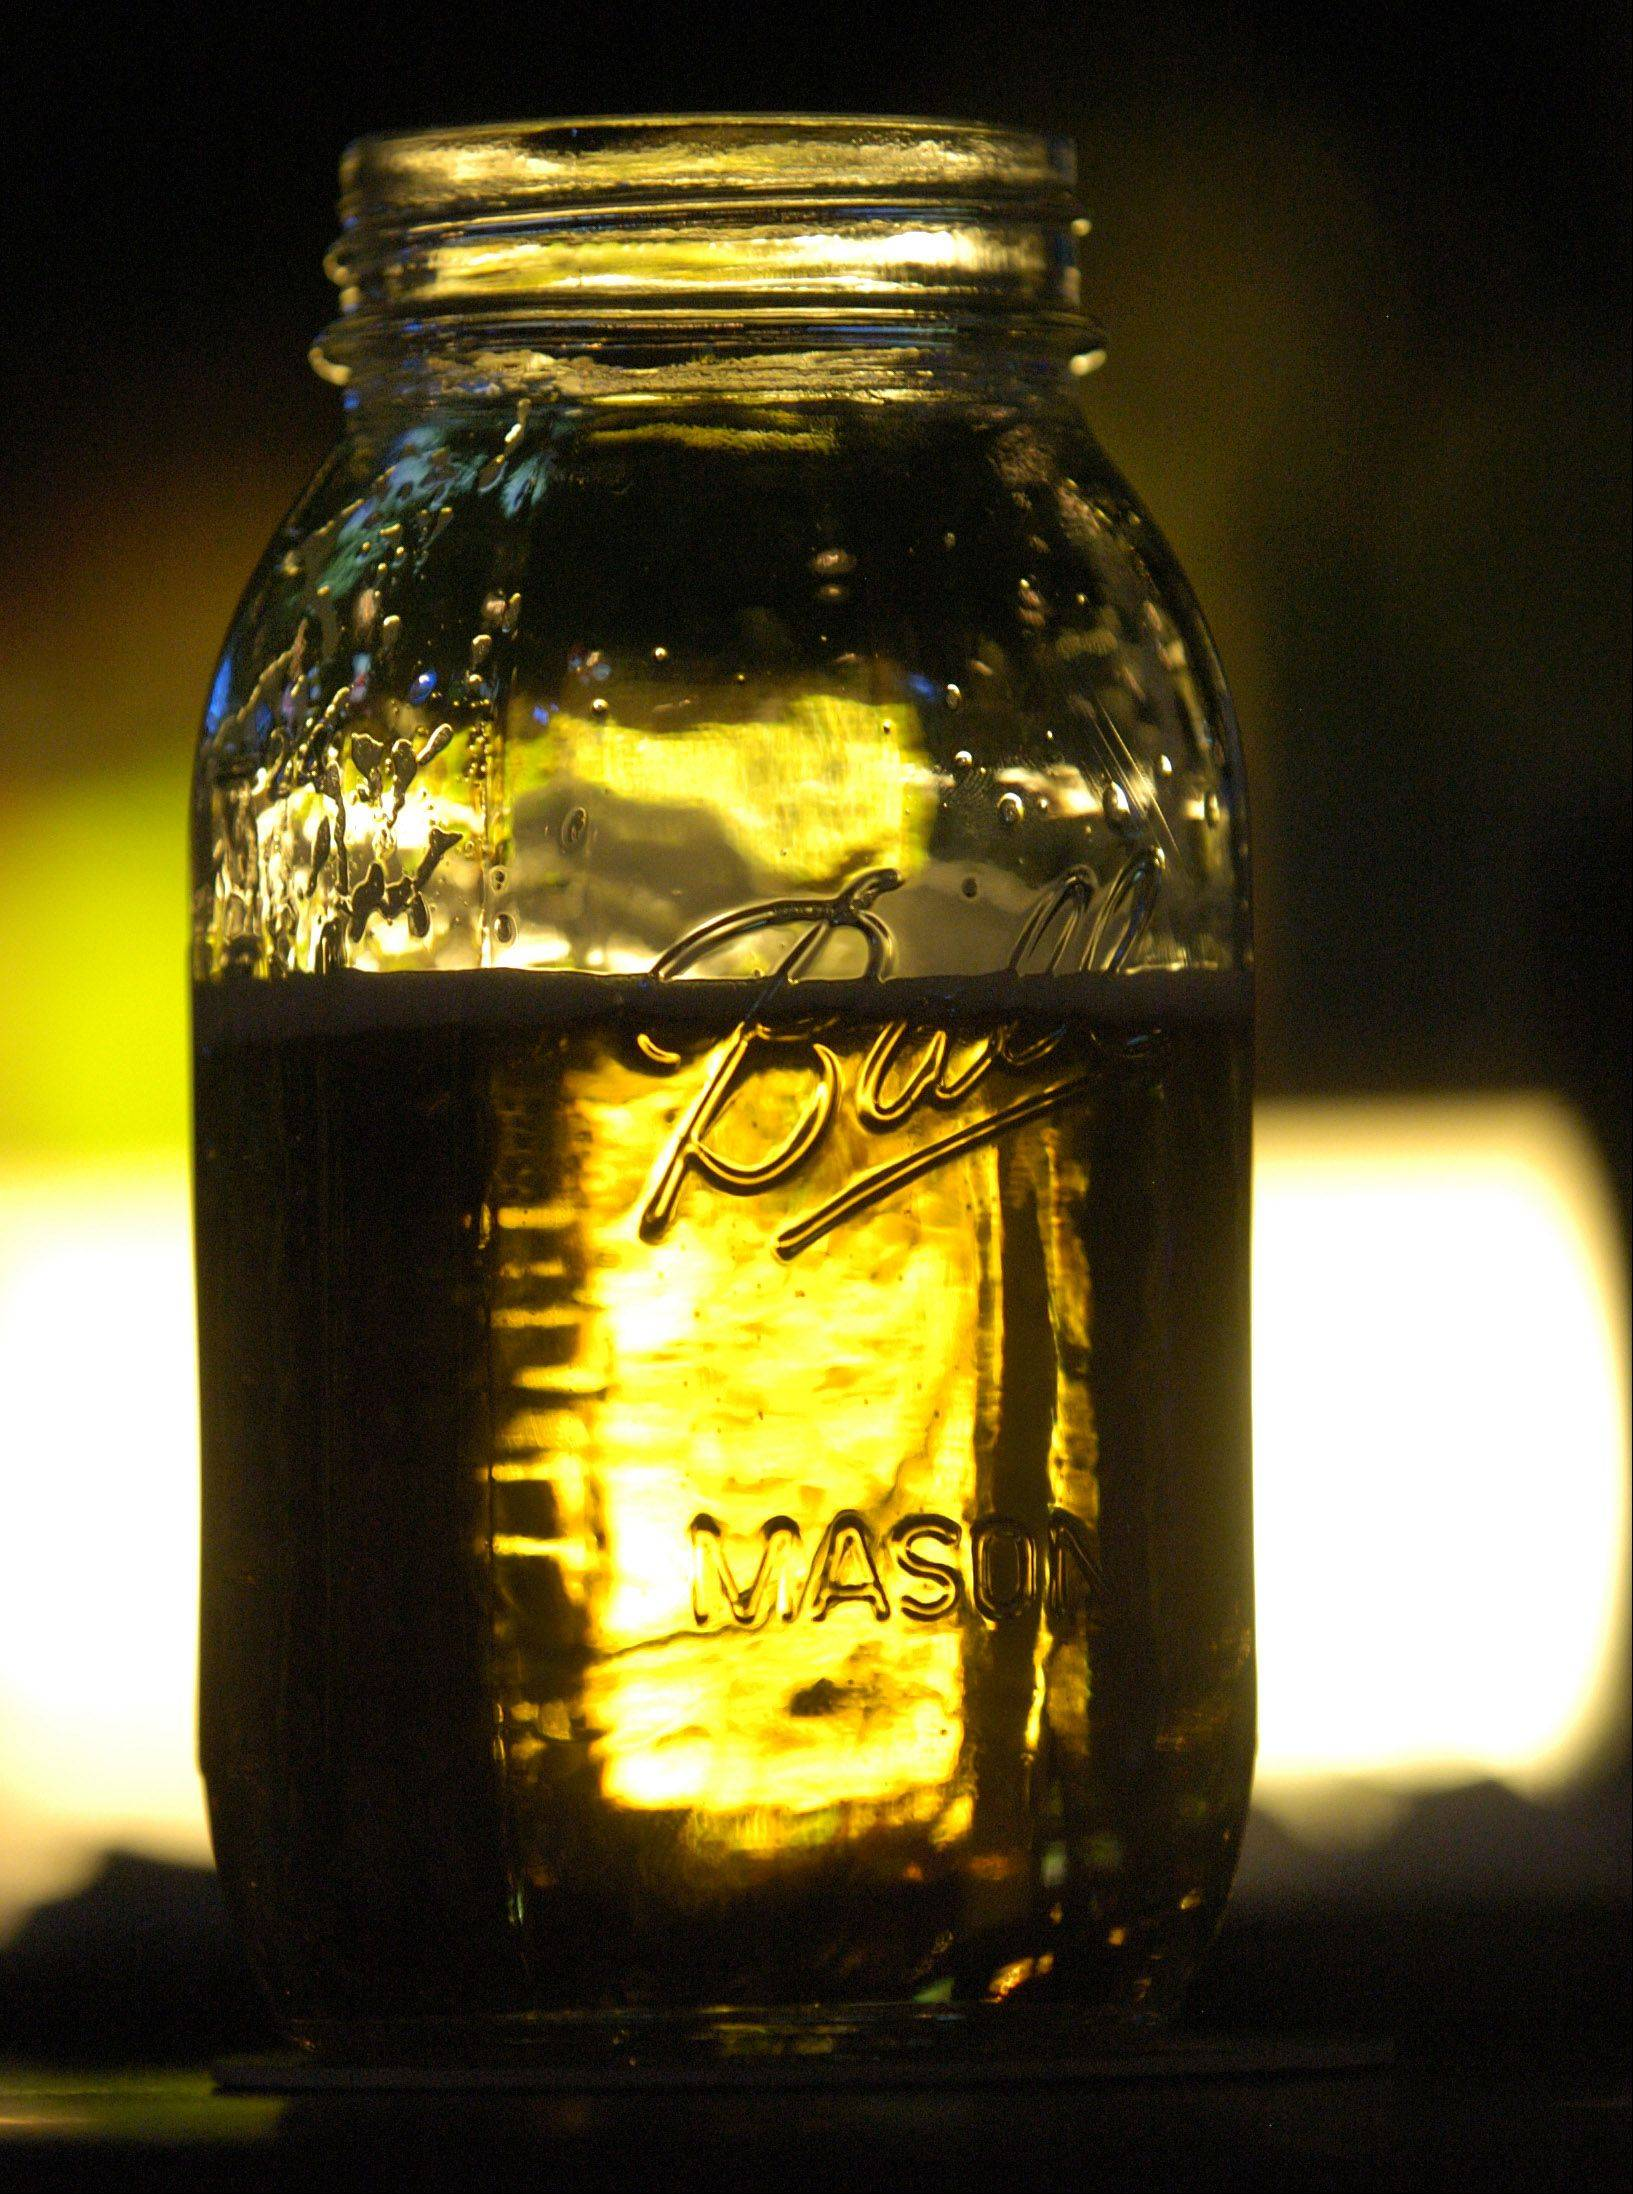 Drink your beer from a Mason jar at Toby Keith's I Love This Bar & Grill in Rosemont.